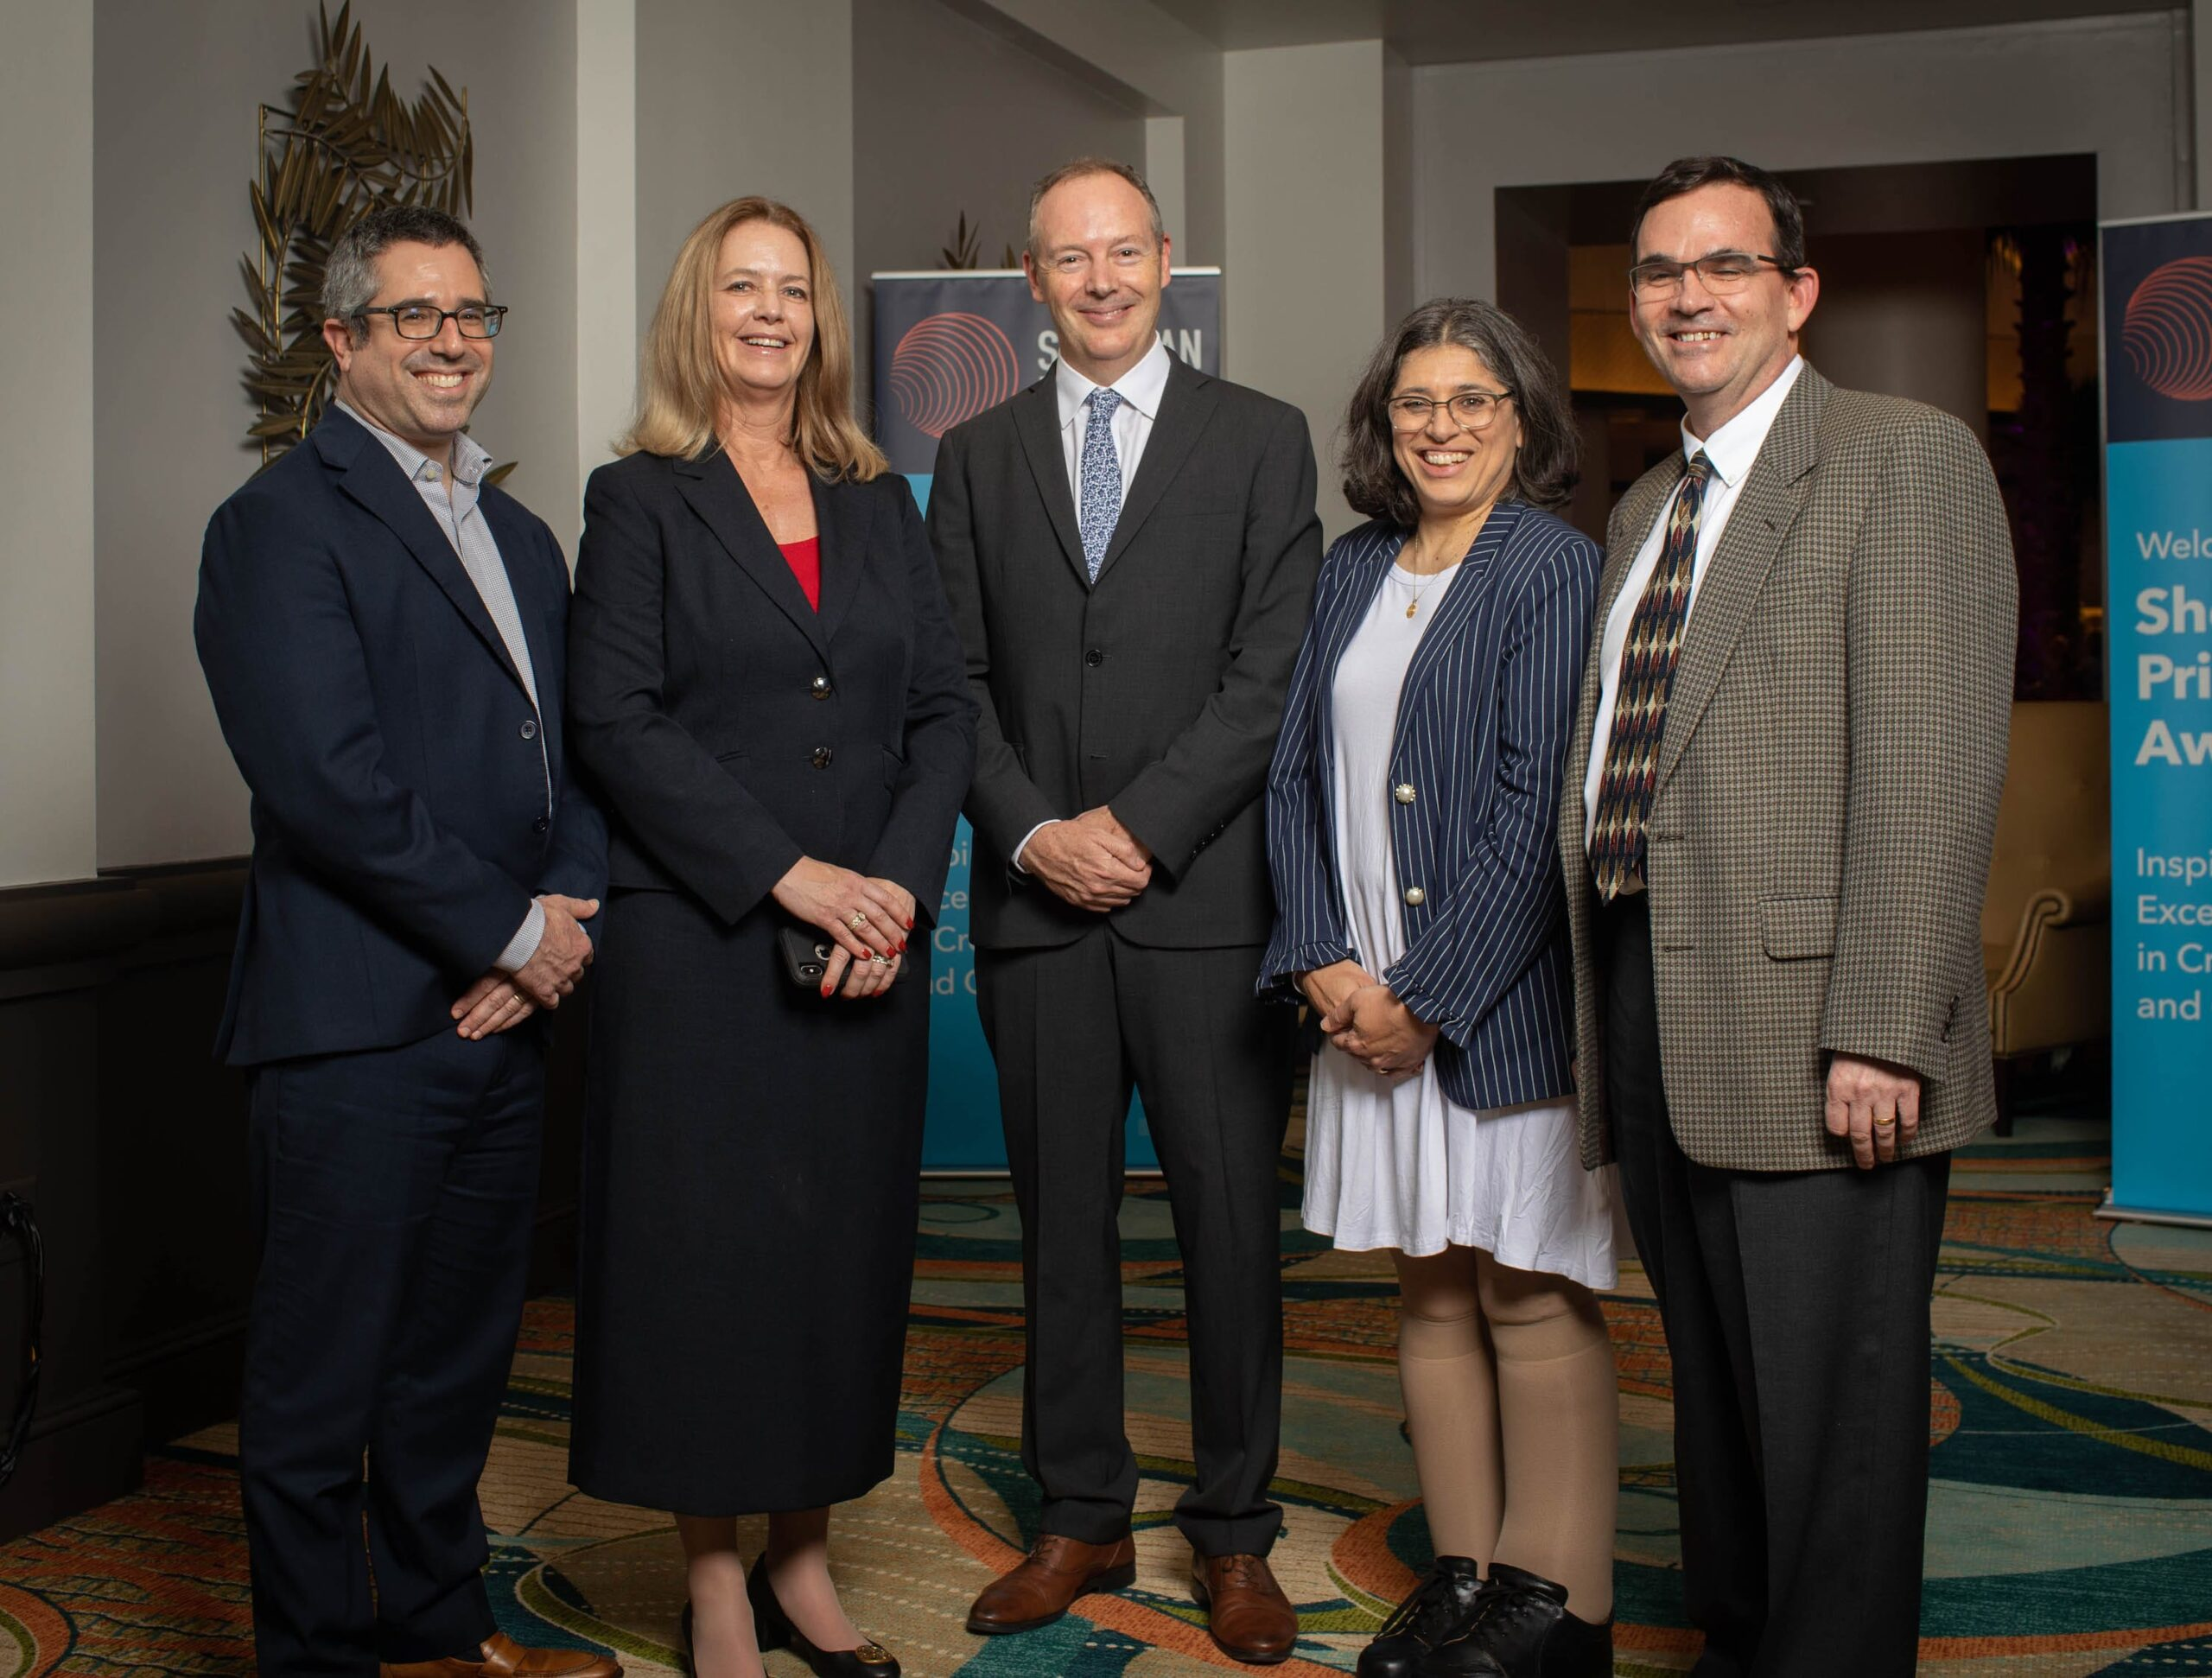 <p>2019 Selection Committee: Dr. Corey Siegel, Dr. Eva Szigethy, Dr. Dermot McGovern (Chair), Dr. Sunanda Kane and Dr. Lee Denson</p>